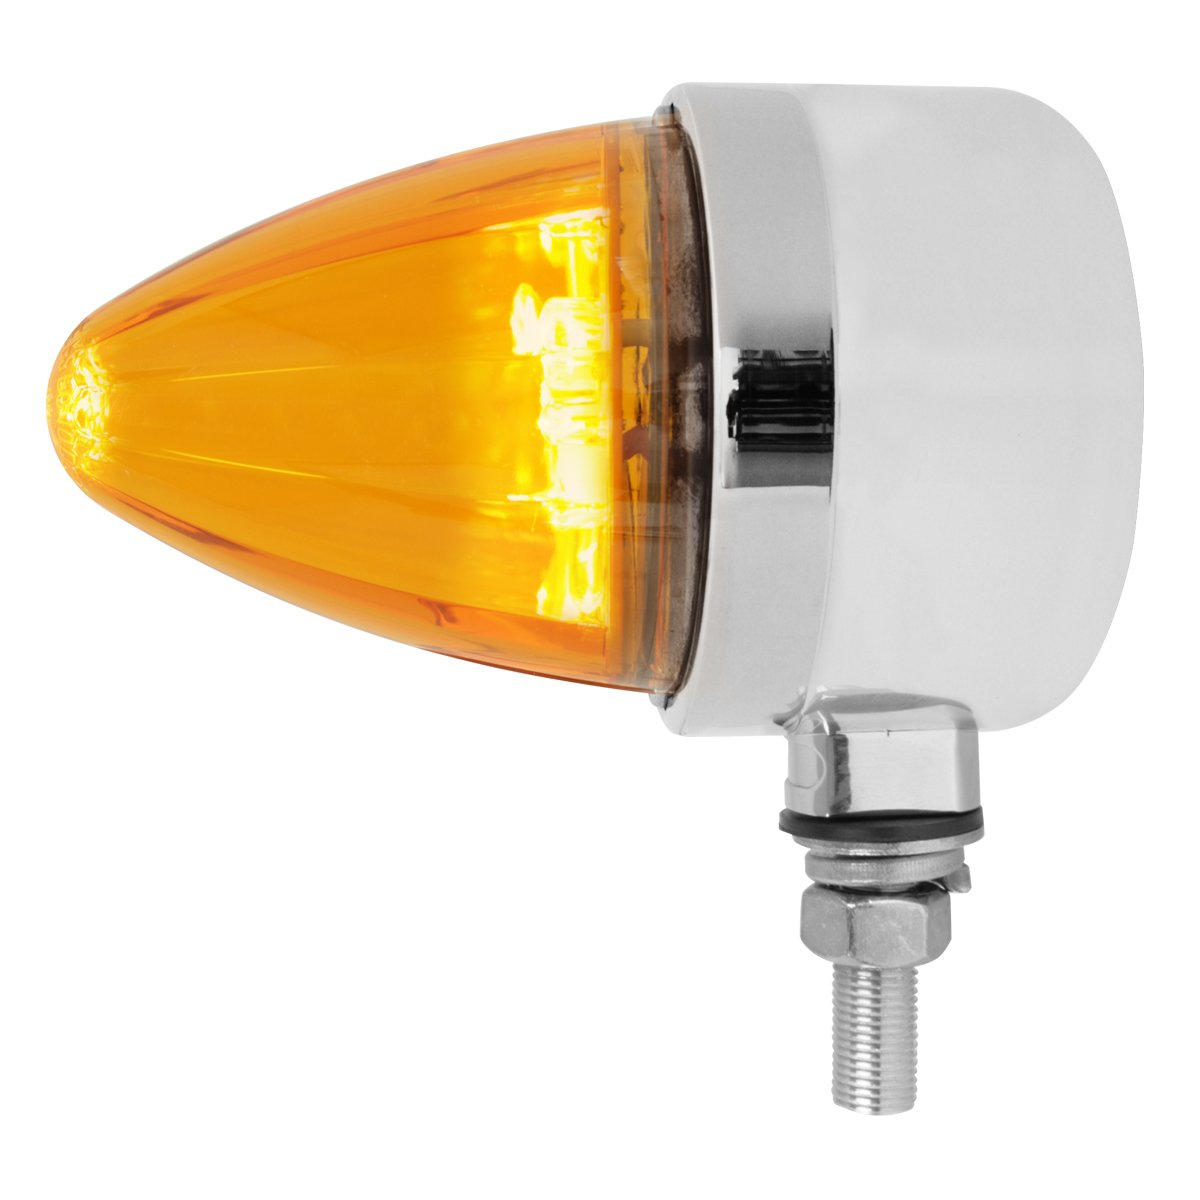 Grand General 81970 Amber/Amber Chrome Die Cast 19 LED Single Faced Pedestal Light by Grand General